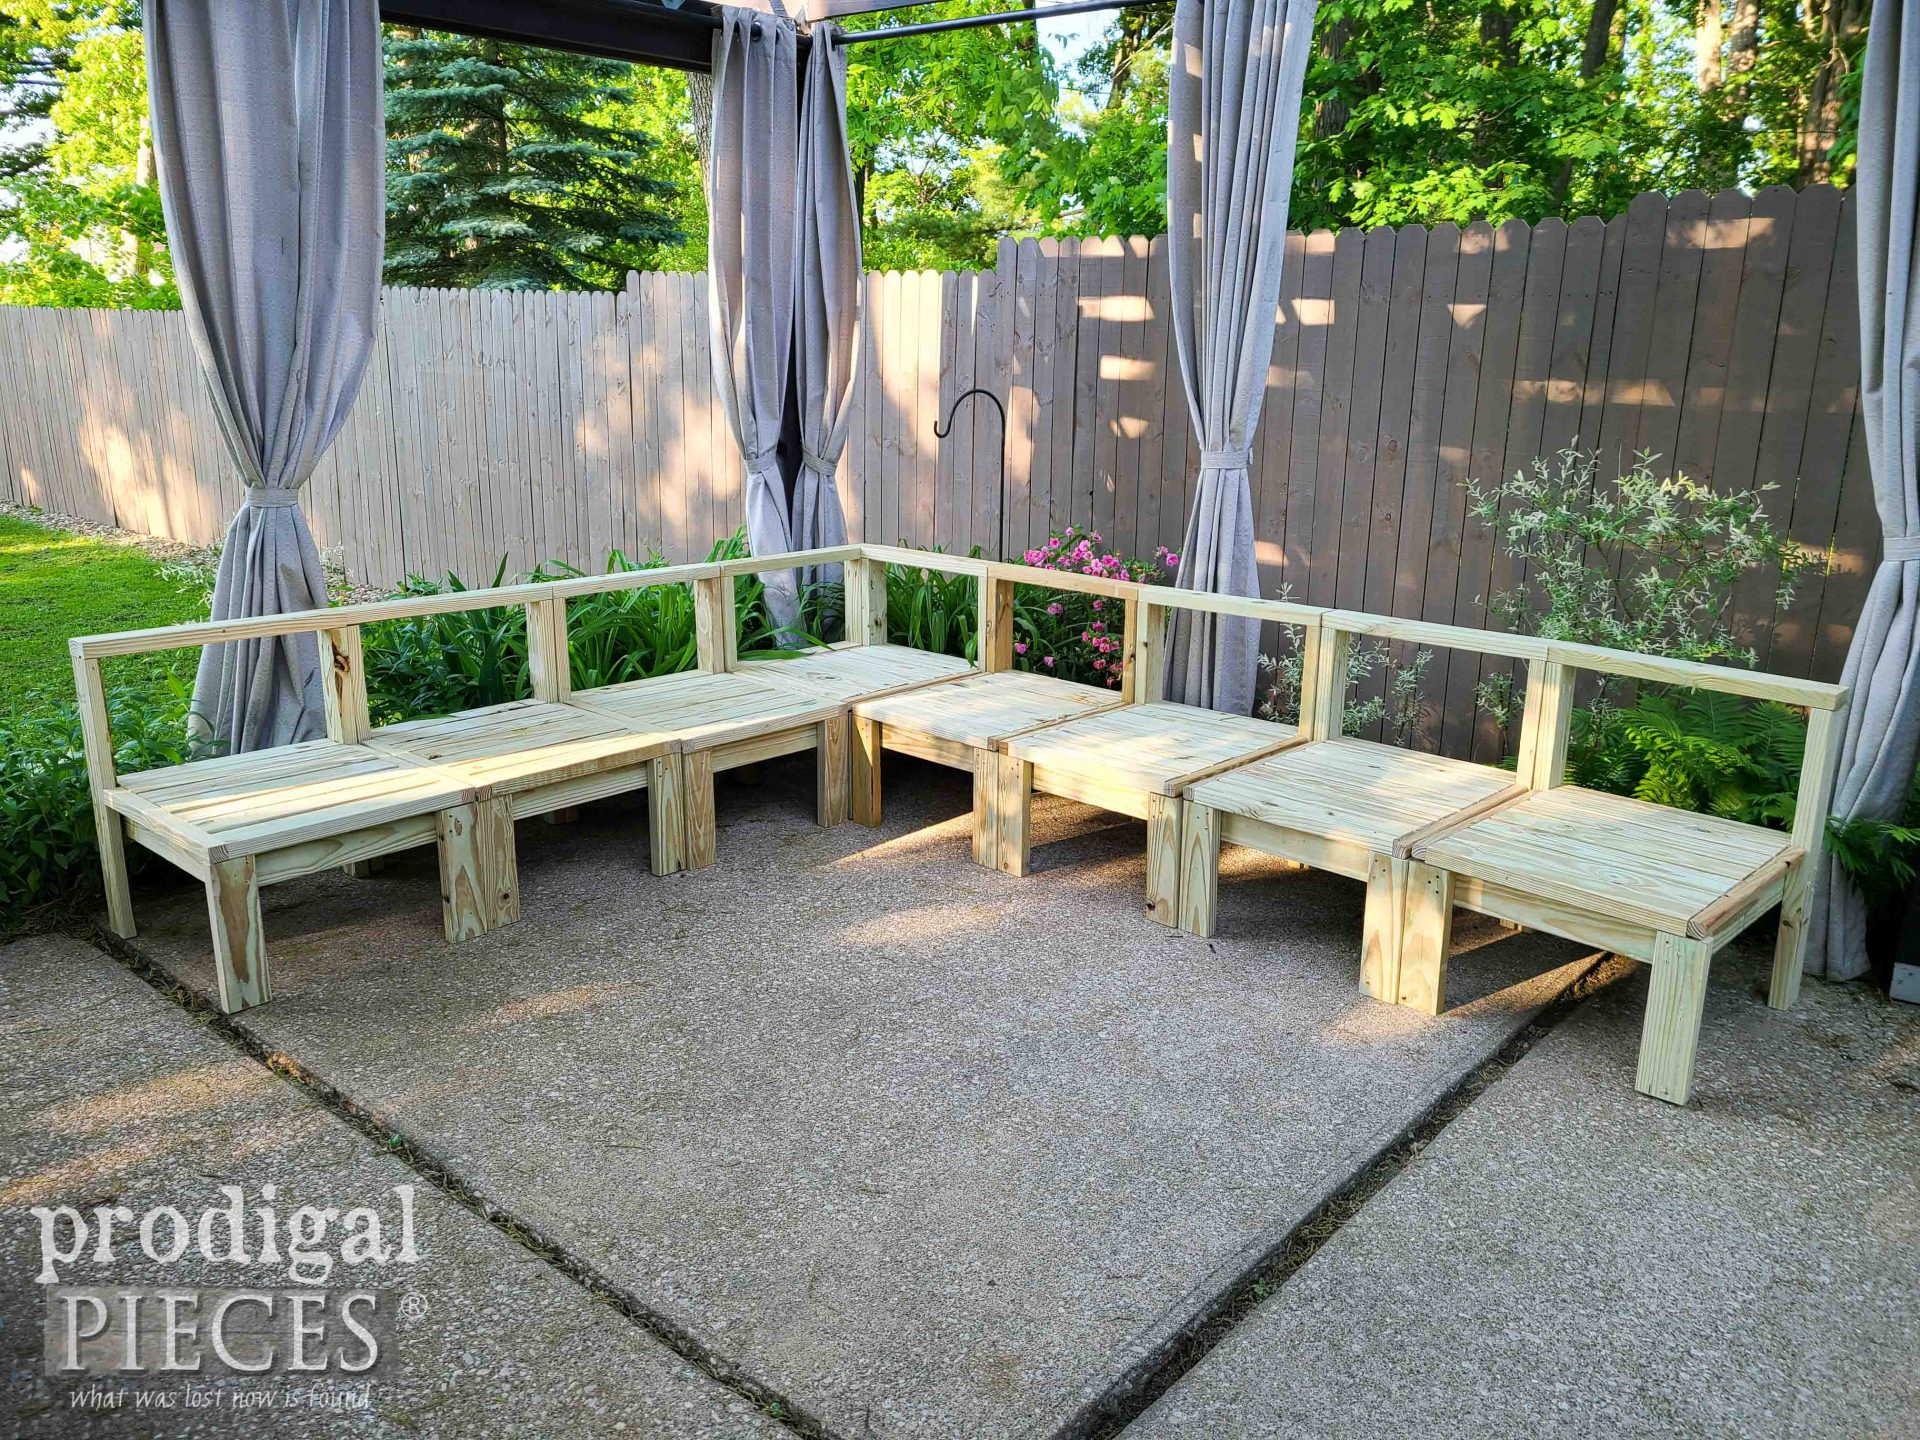 Assembled DIY Patio Sectional Sofa Before Stain | prodigalpieces.com #prodigalpieces #diy #patio #outdoor